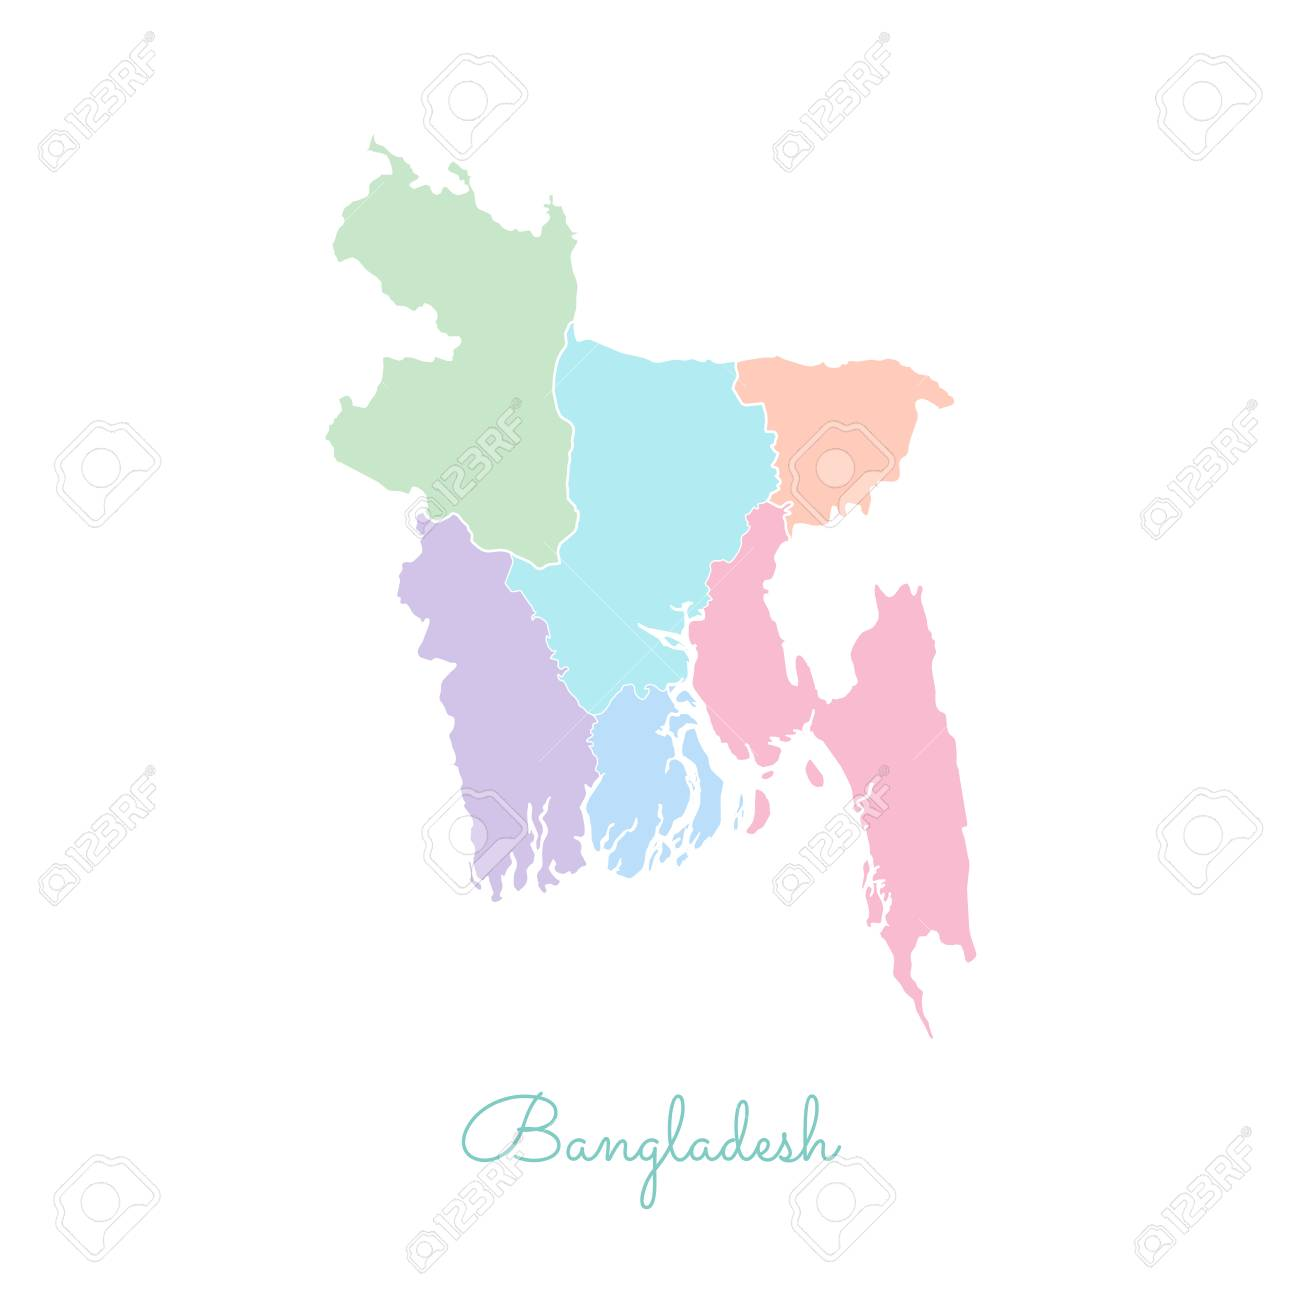 Bangladesh Region Map Colorful With White Outline Detailed